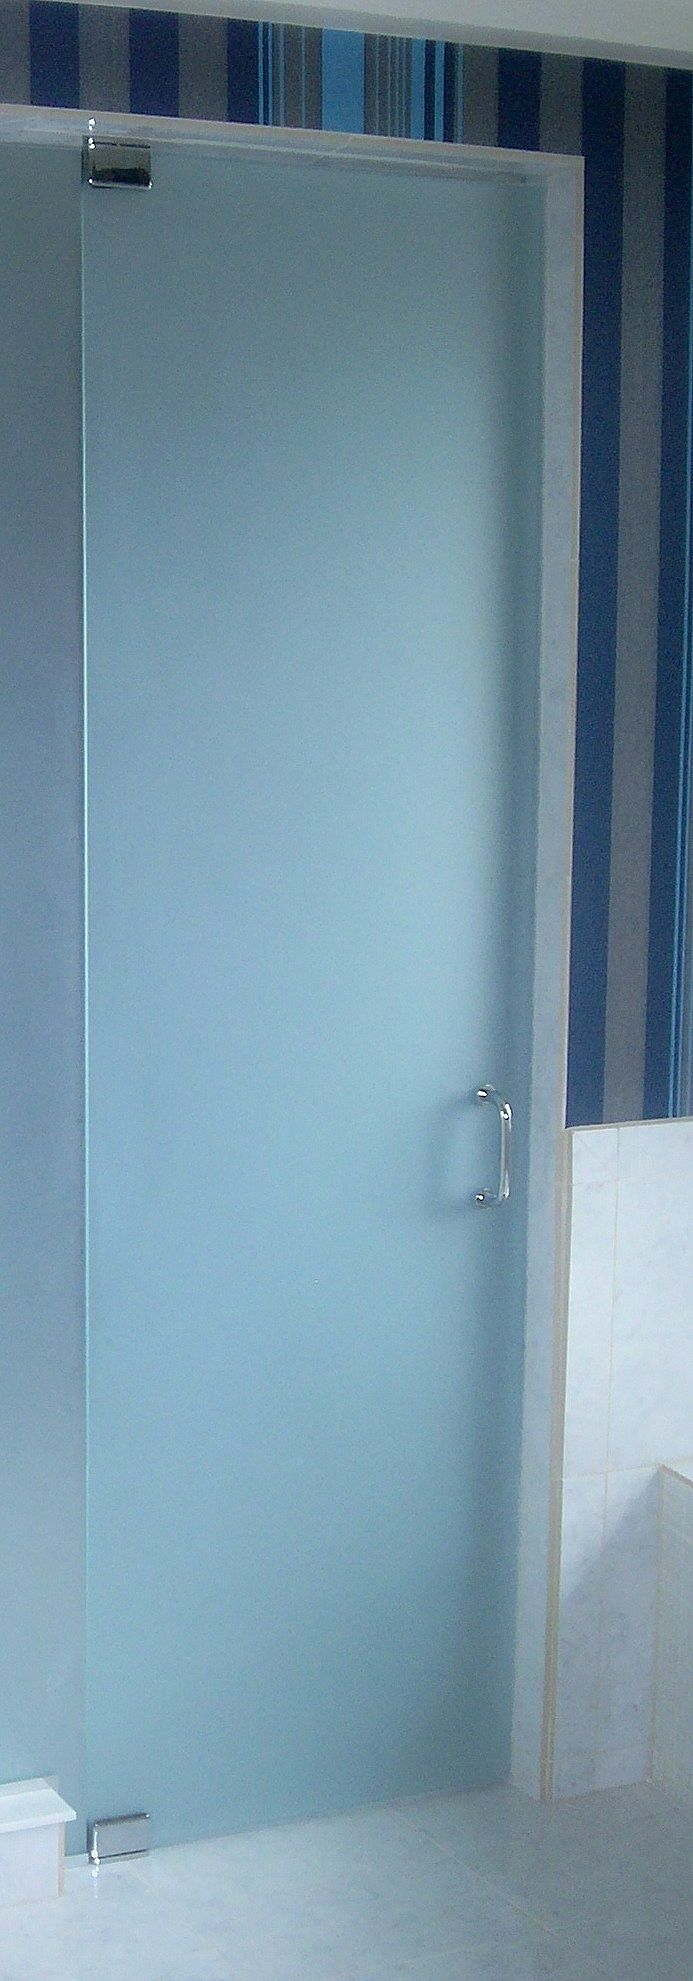 frameless shower enclosure door with satin glass fabricated u0026 installed by rex glass u0026